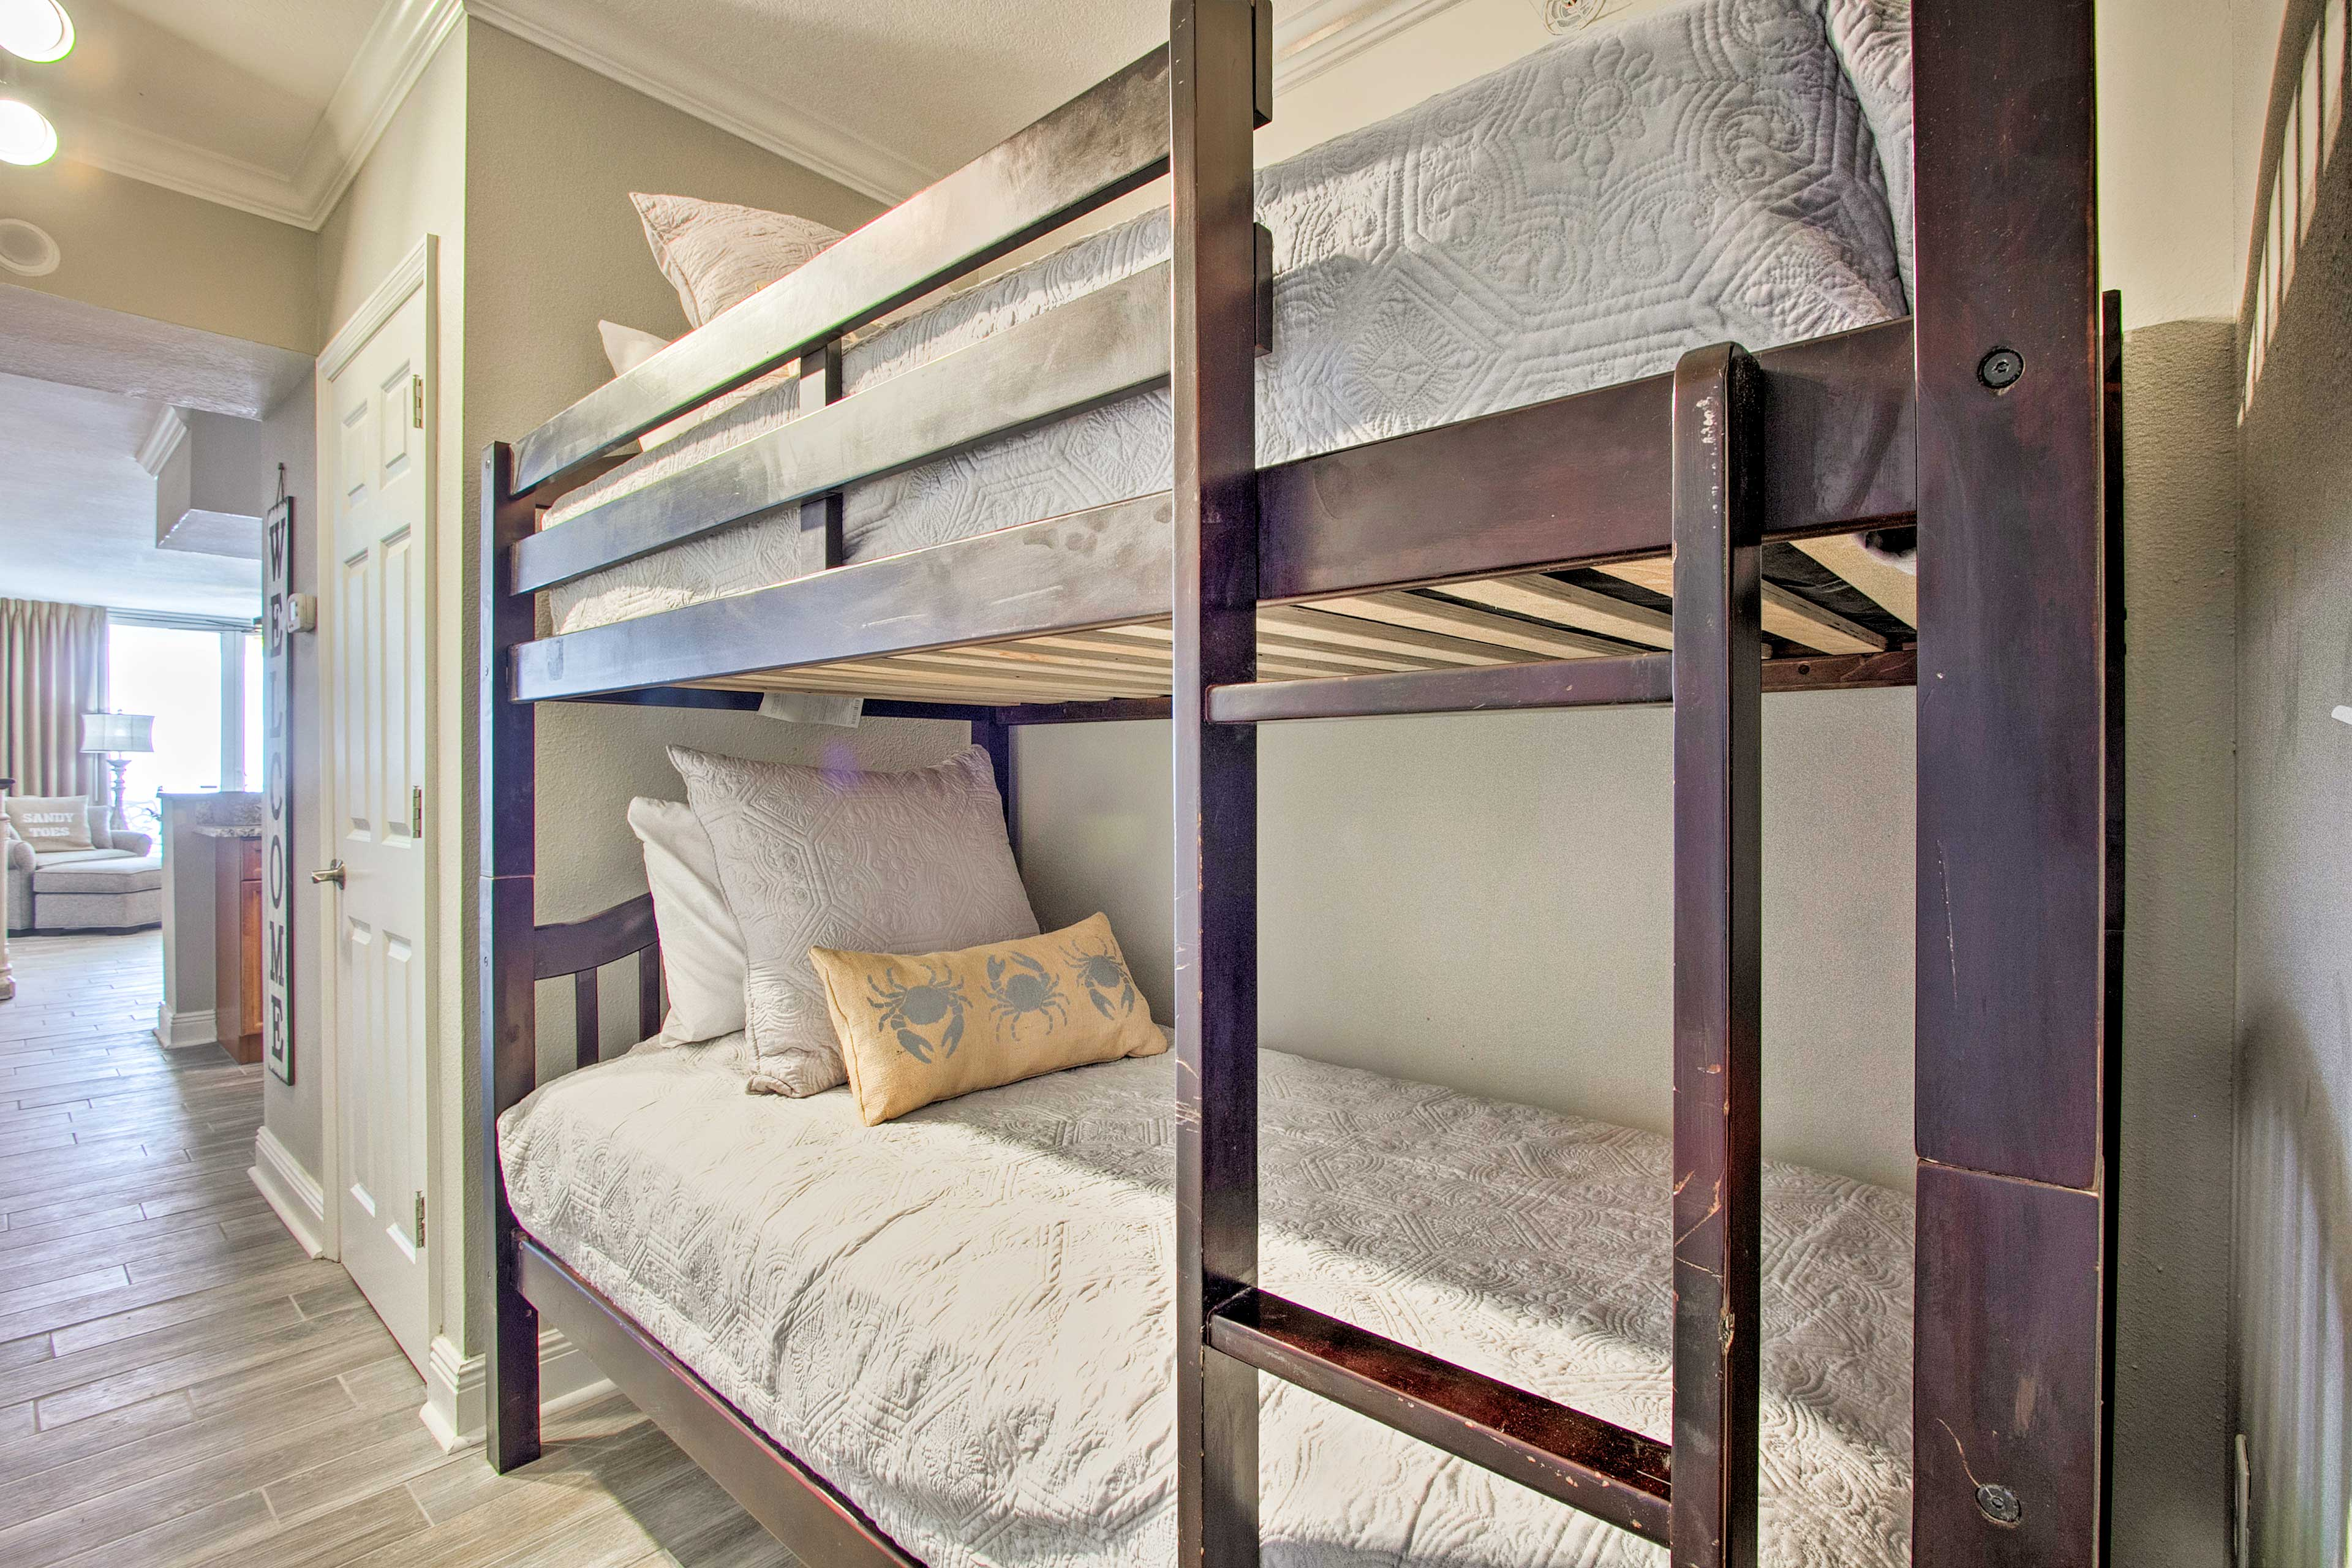 Additional sleeping can be found on the twin-over-twin bunk bed in the hall way.